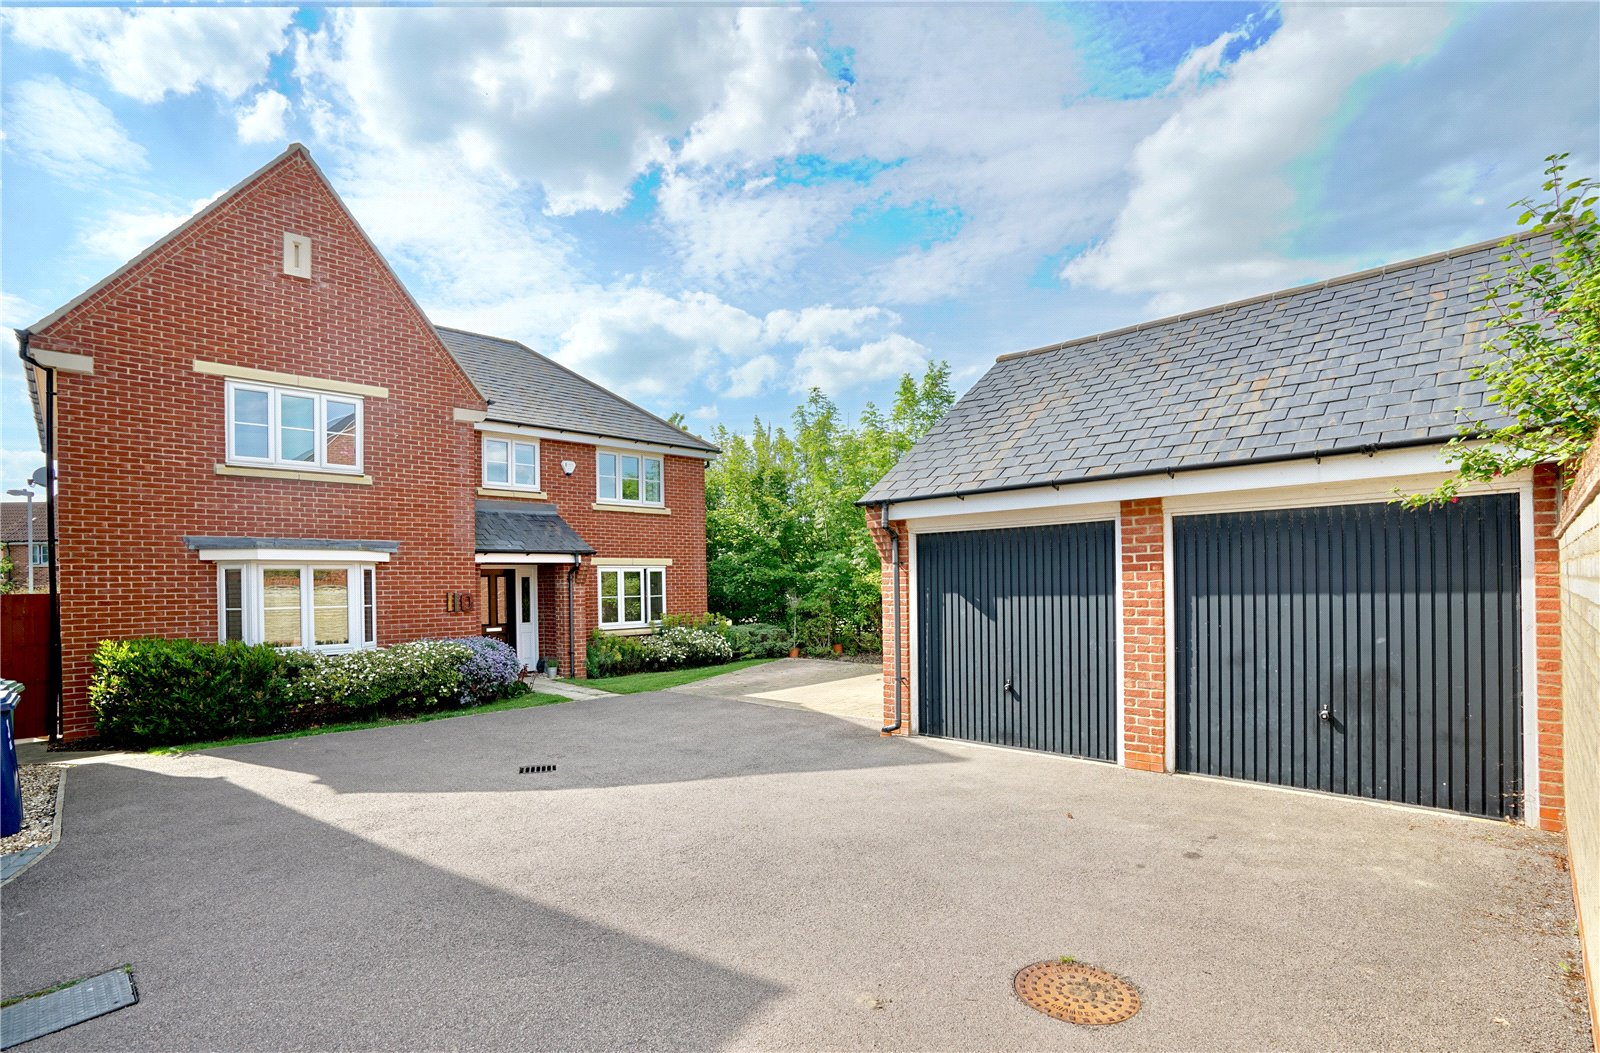 5 bed house for sale in Lannesbury Crescent, St. Neots - Property Image 1